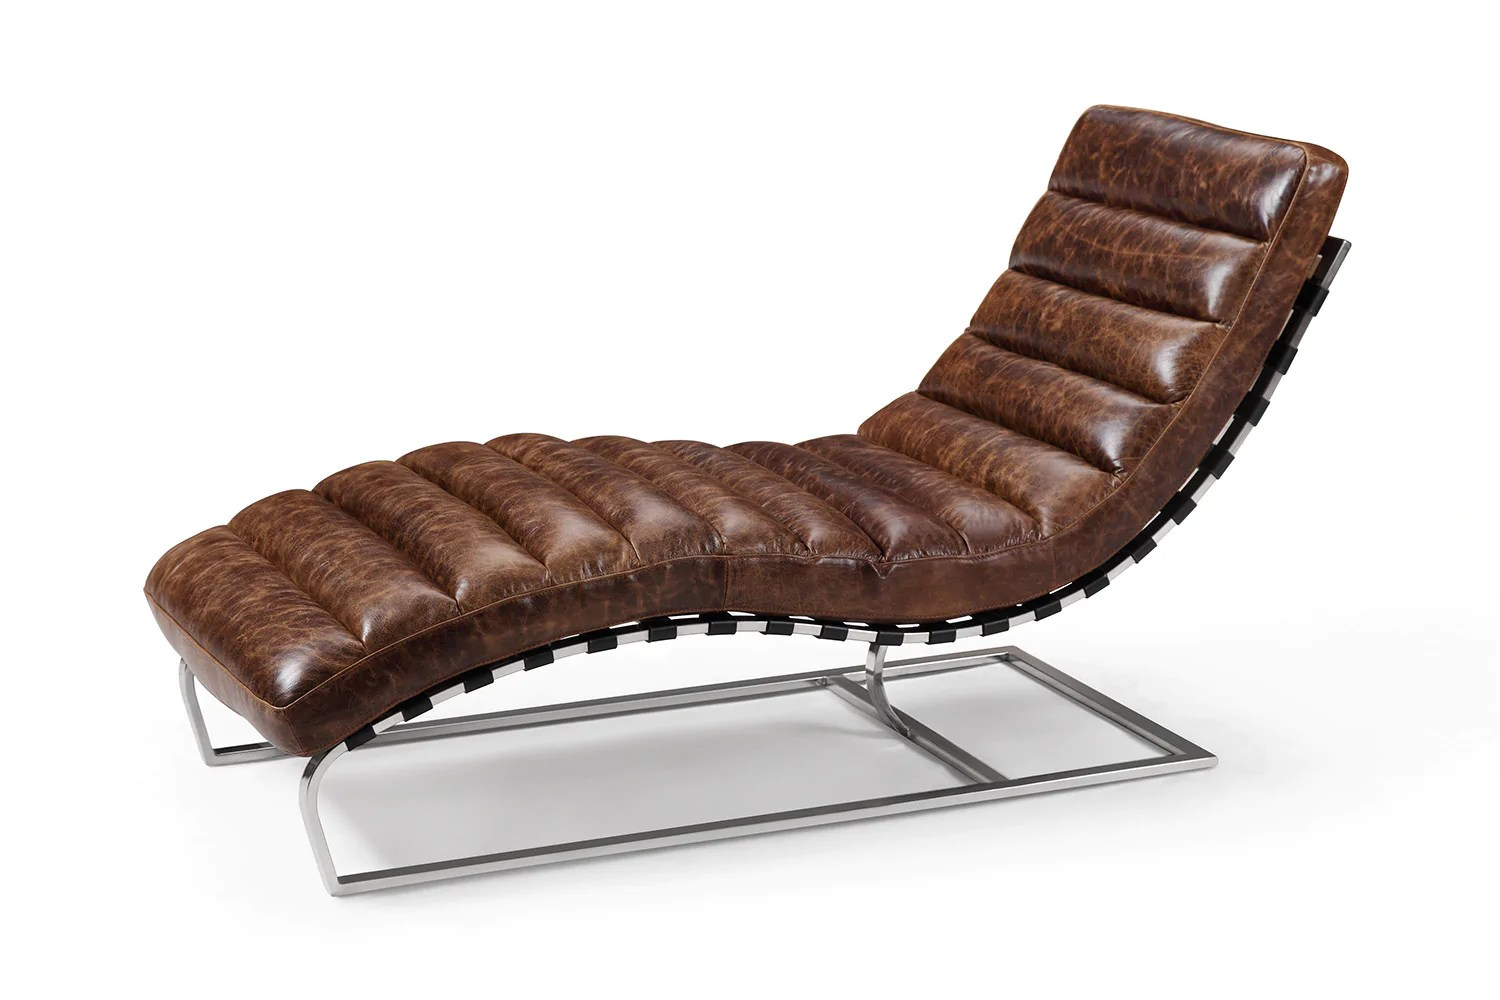 - The Leather Chaise Lounge Rose And Moore Leather Lounge Chair Rose